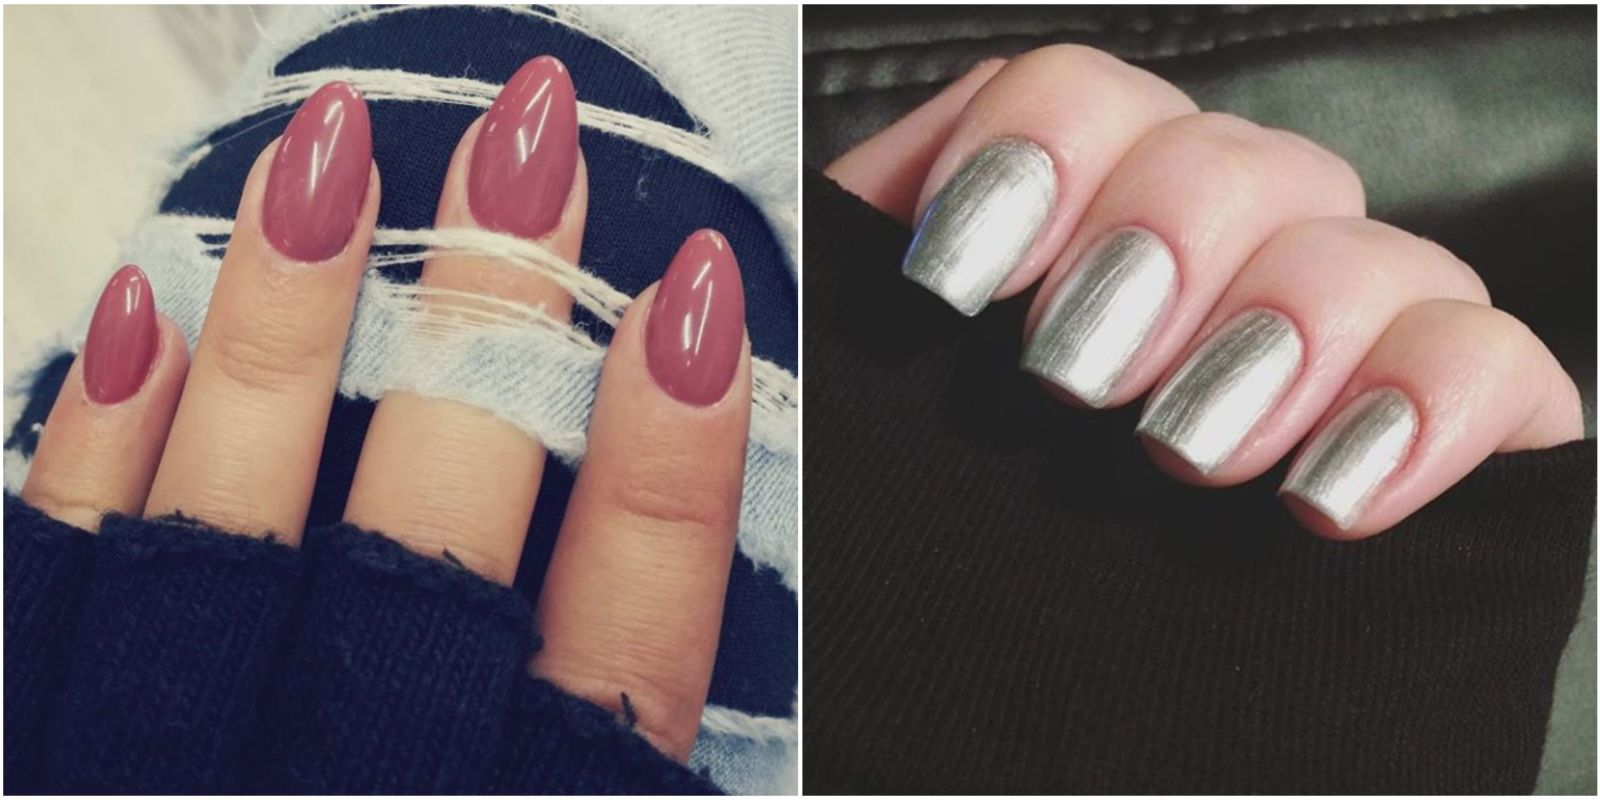 9 Different Nail Shapes And Names For Your Manicure